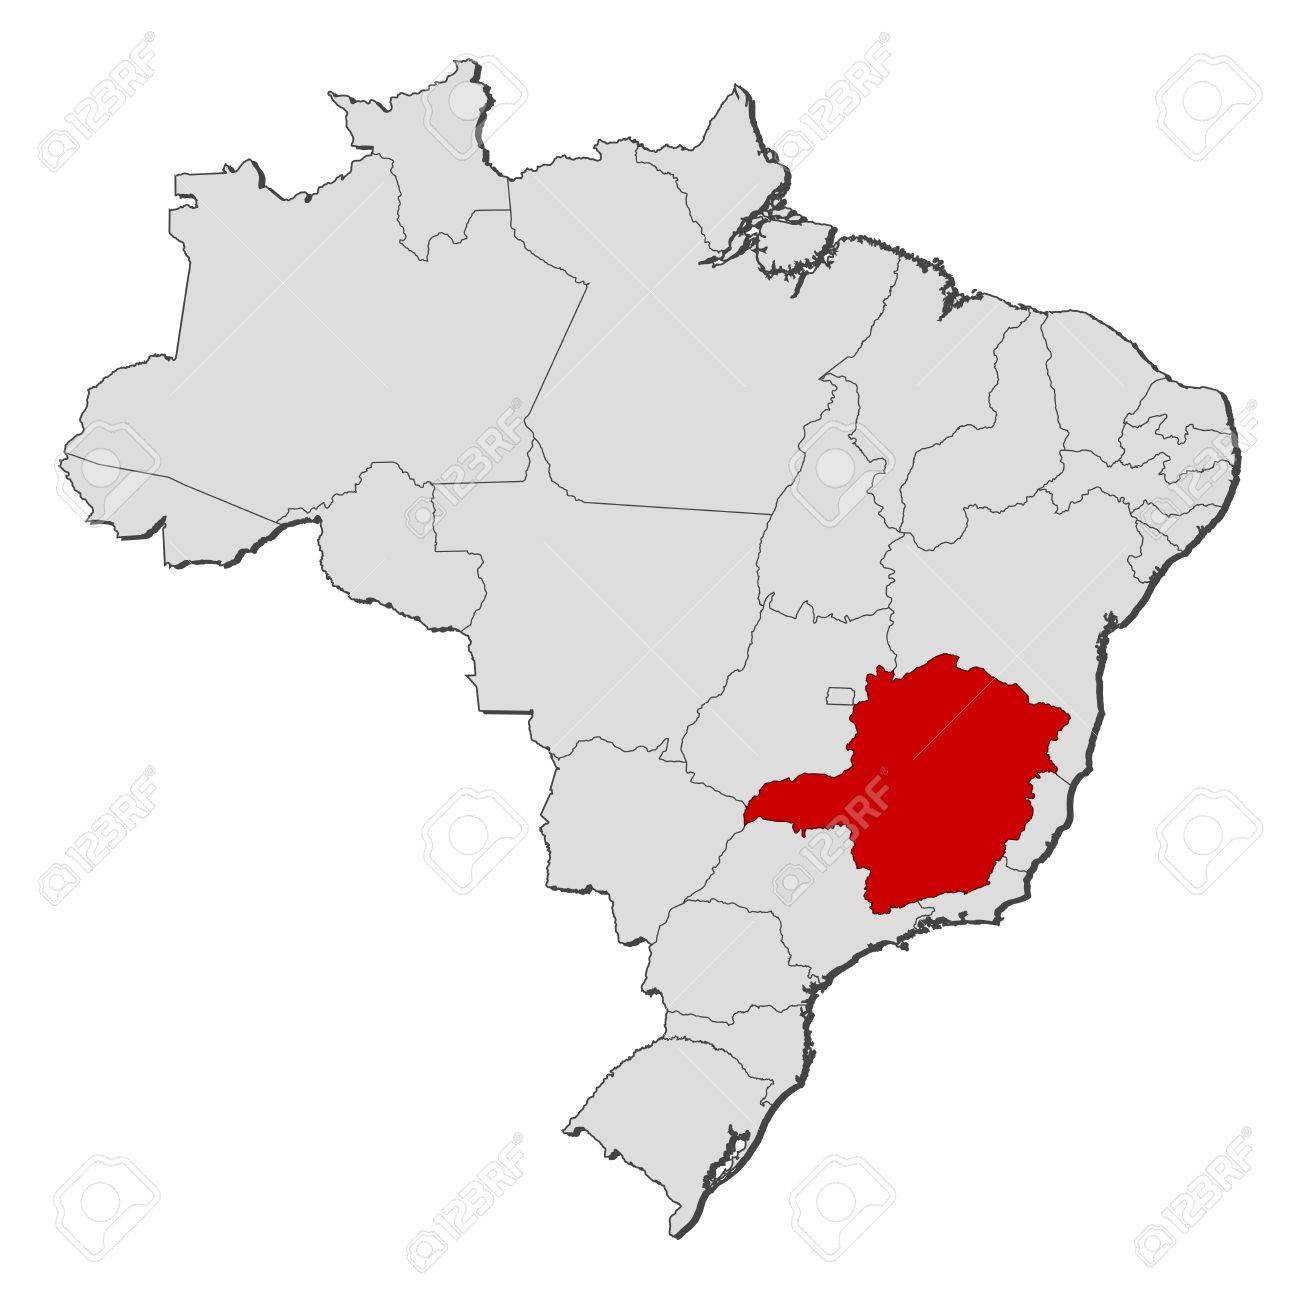 Political Map Of Brazil With The Several States Where Minas Gerais - Brazil states map